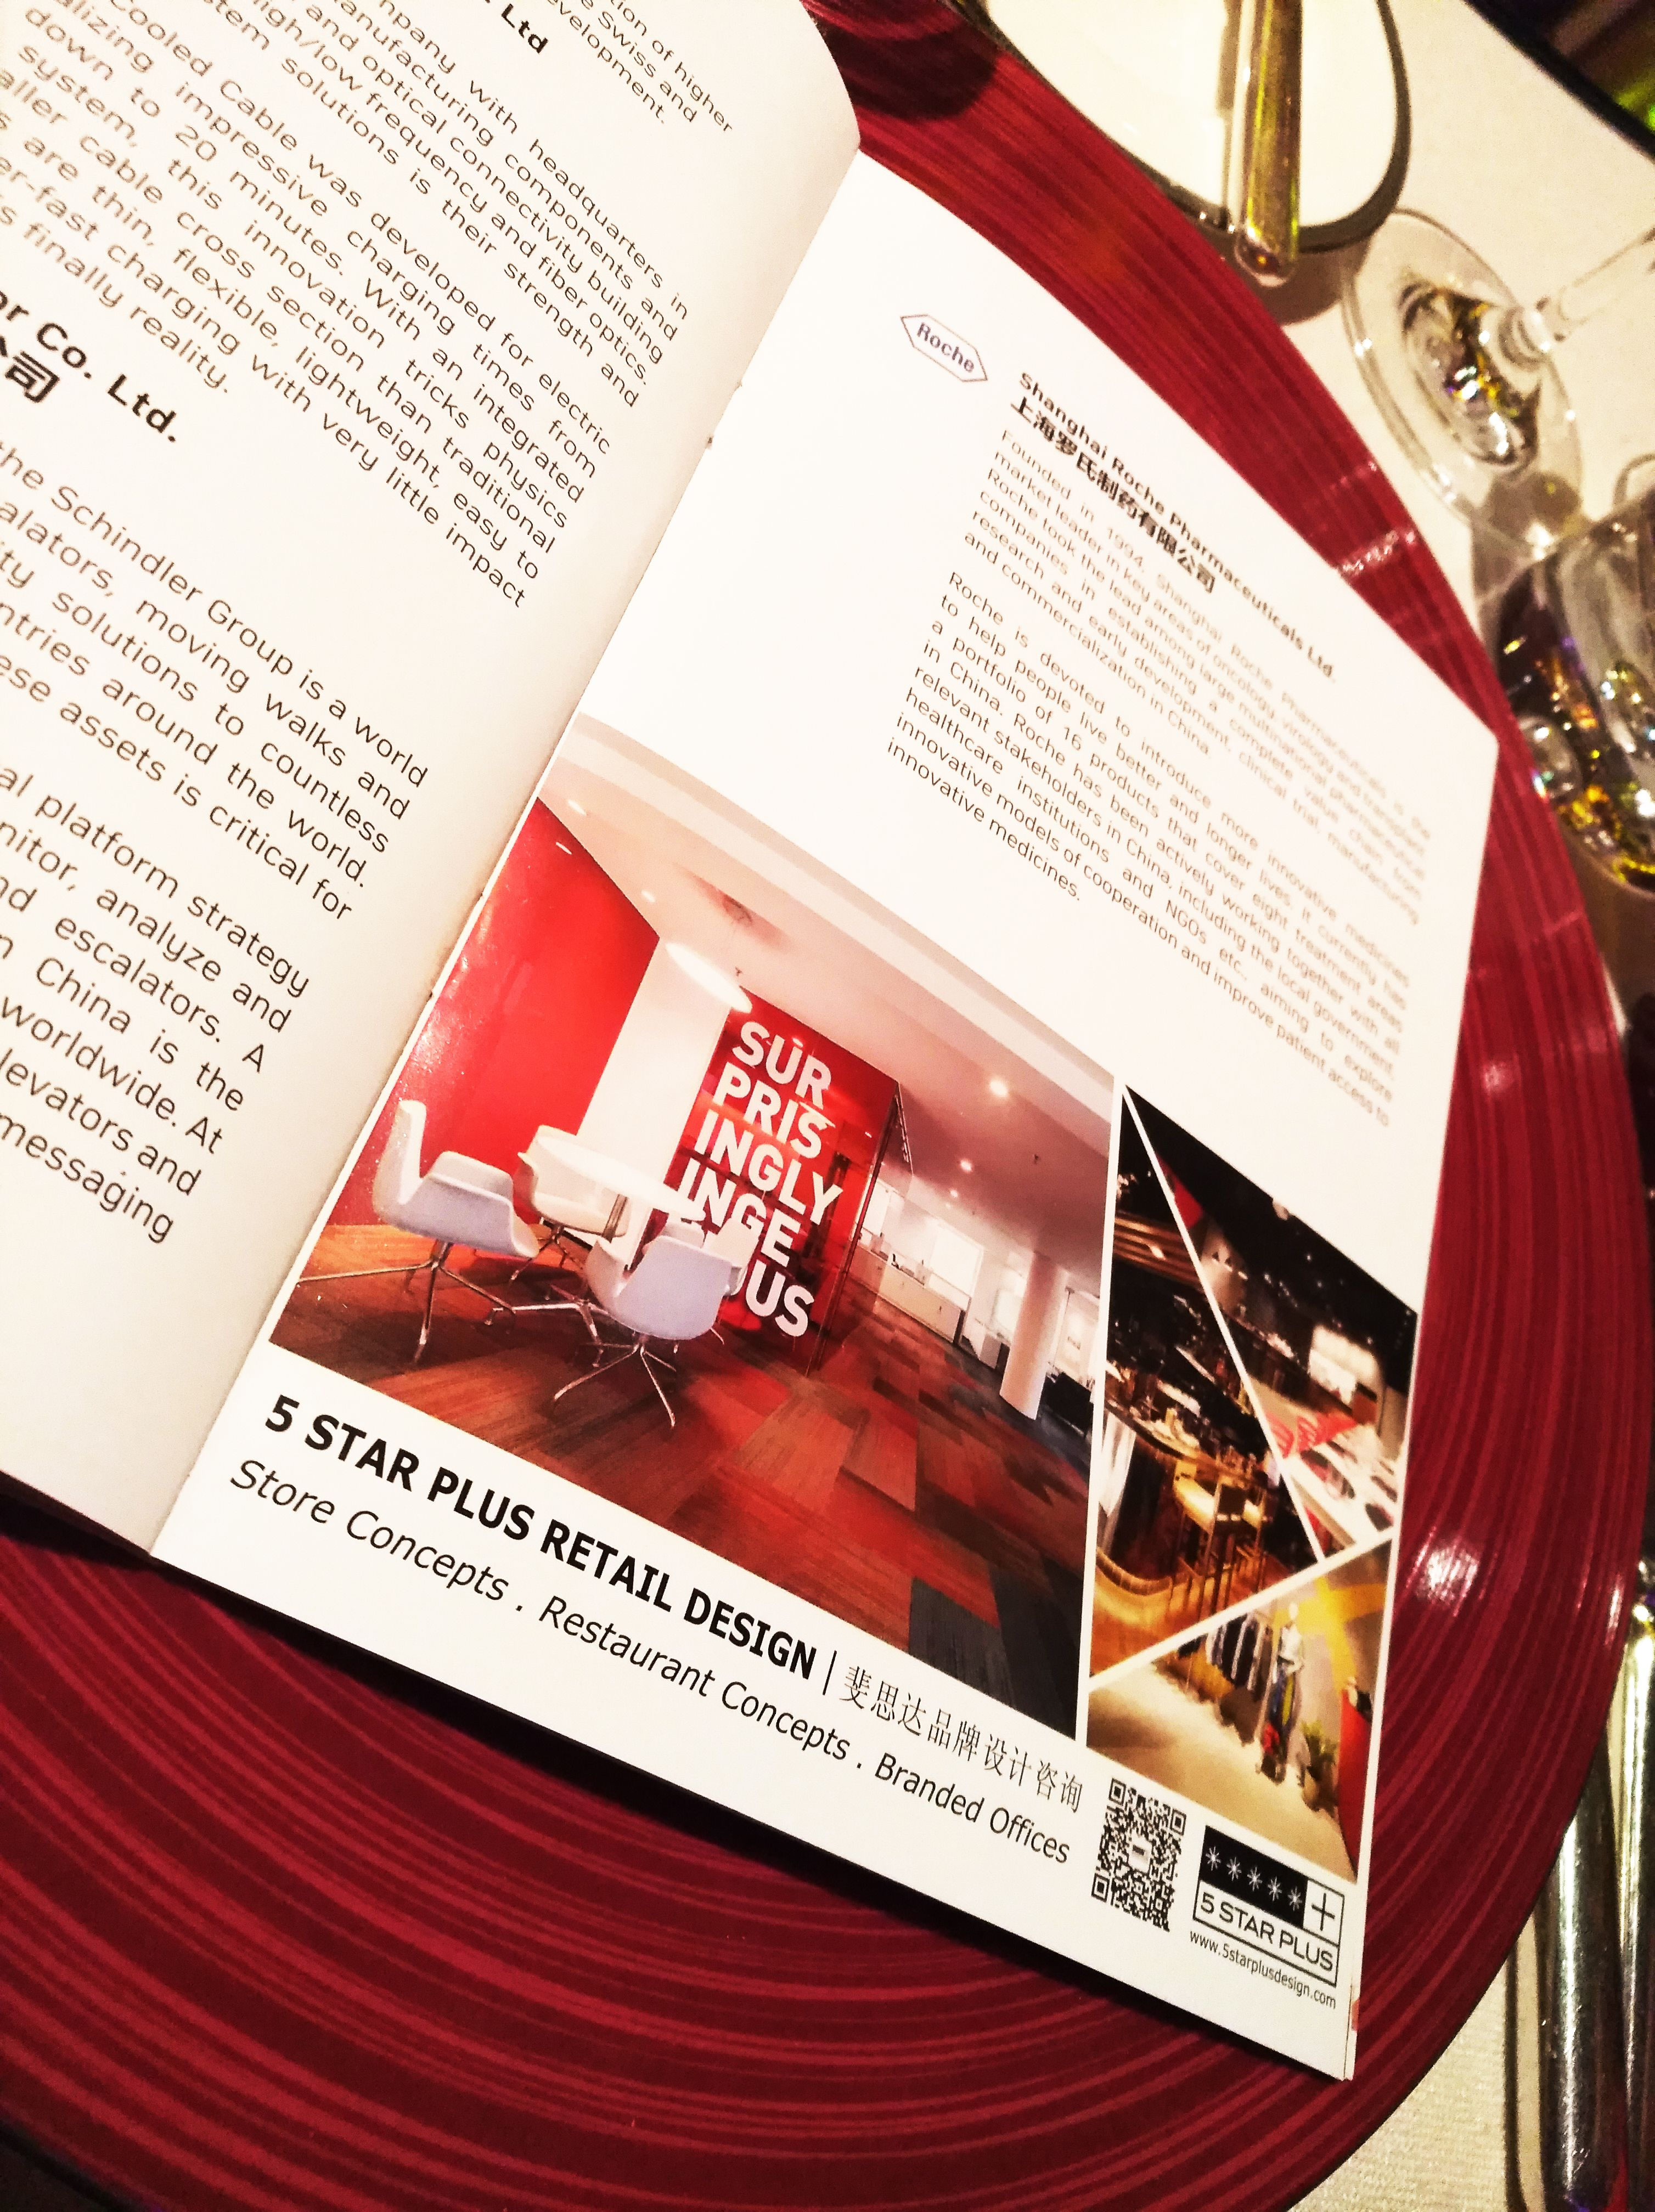 The Sino Swiss Business Awards SSBA is an exclusive event